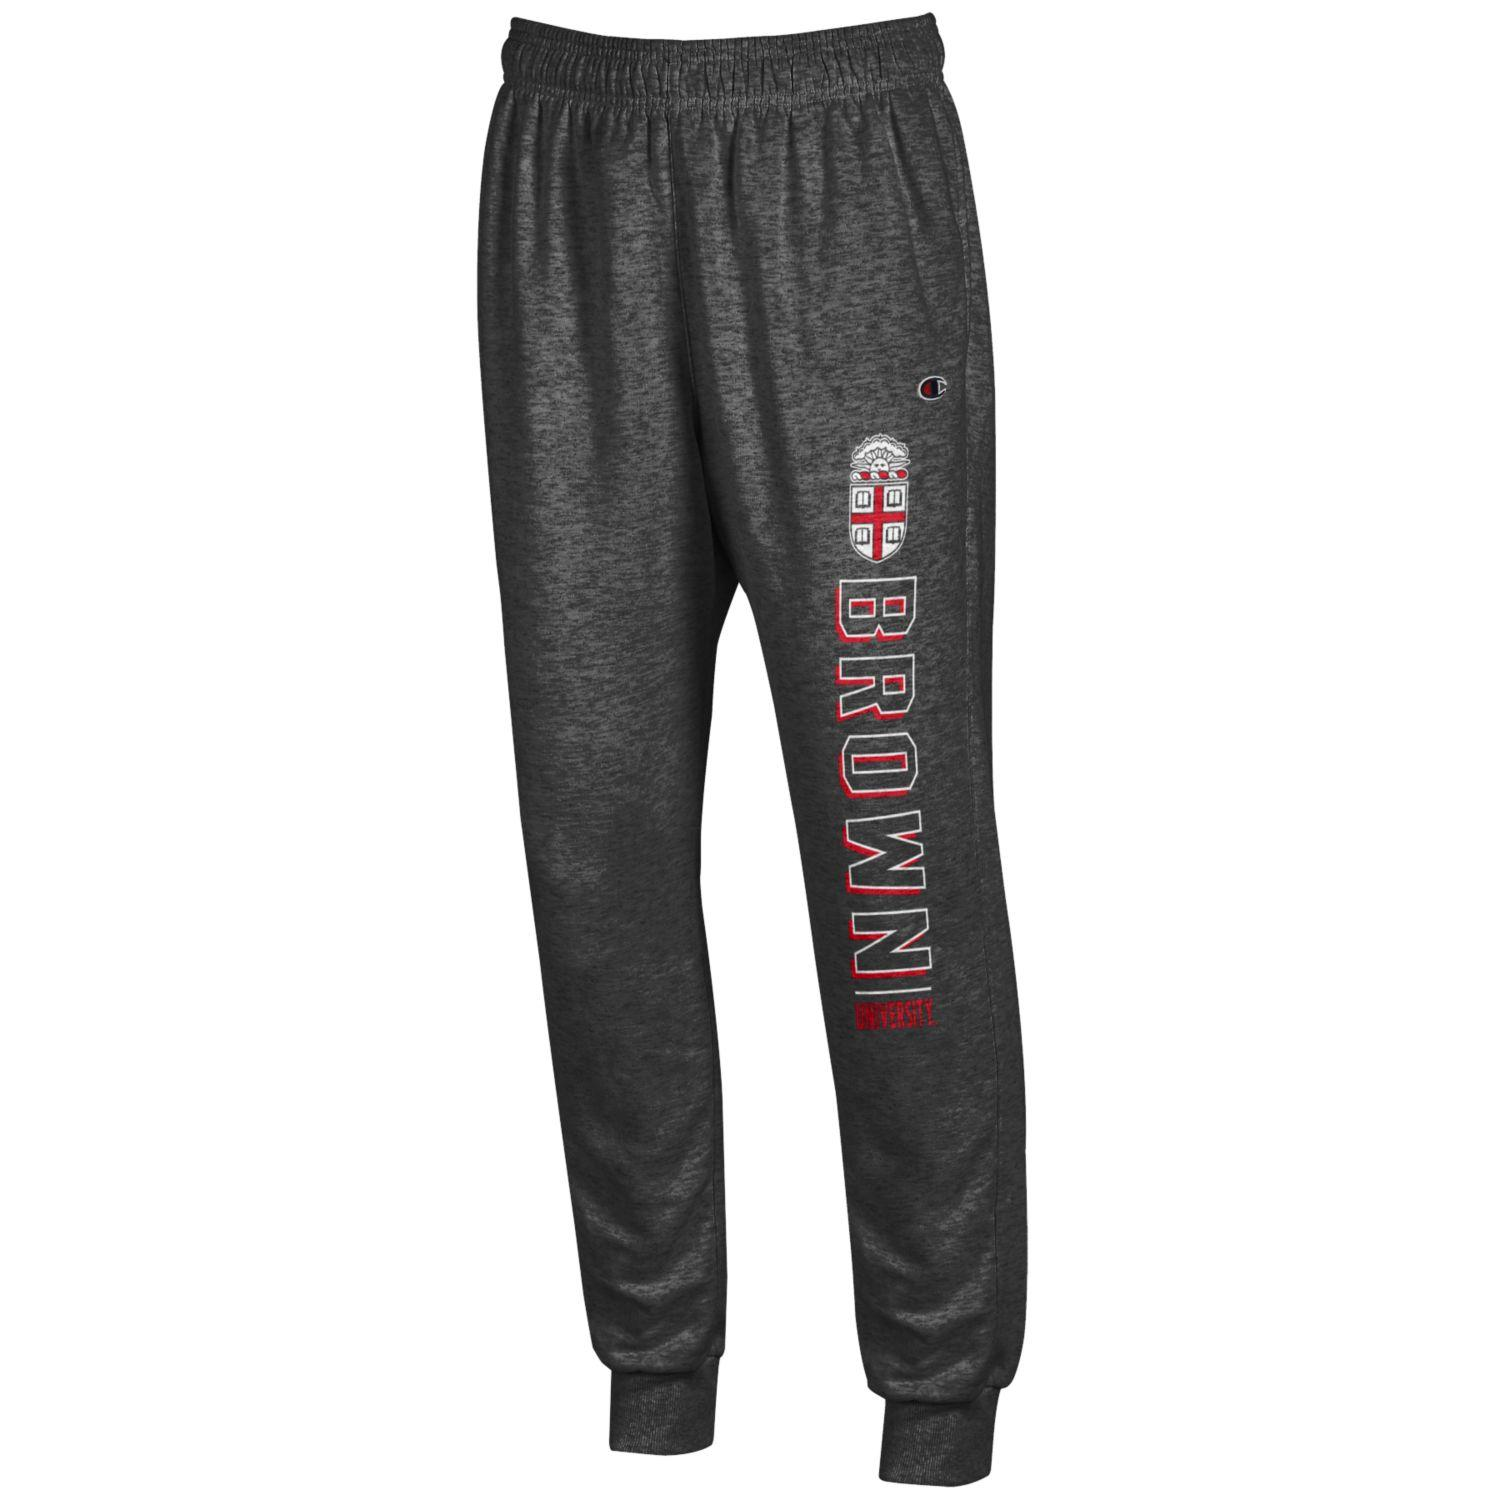 Image For Champion Women's Charcoal Crest Sweatpants - Small